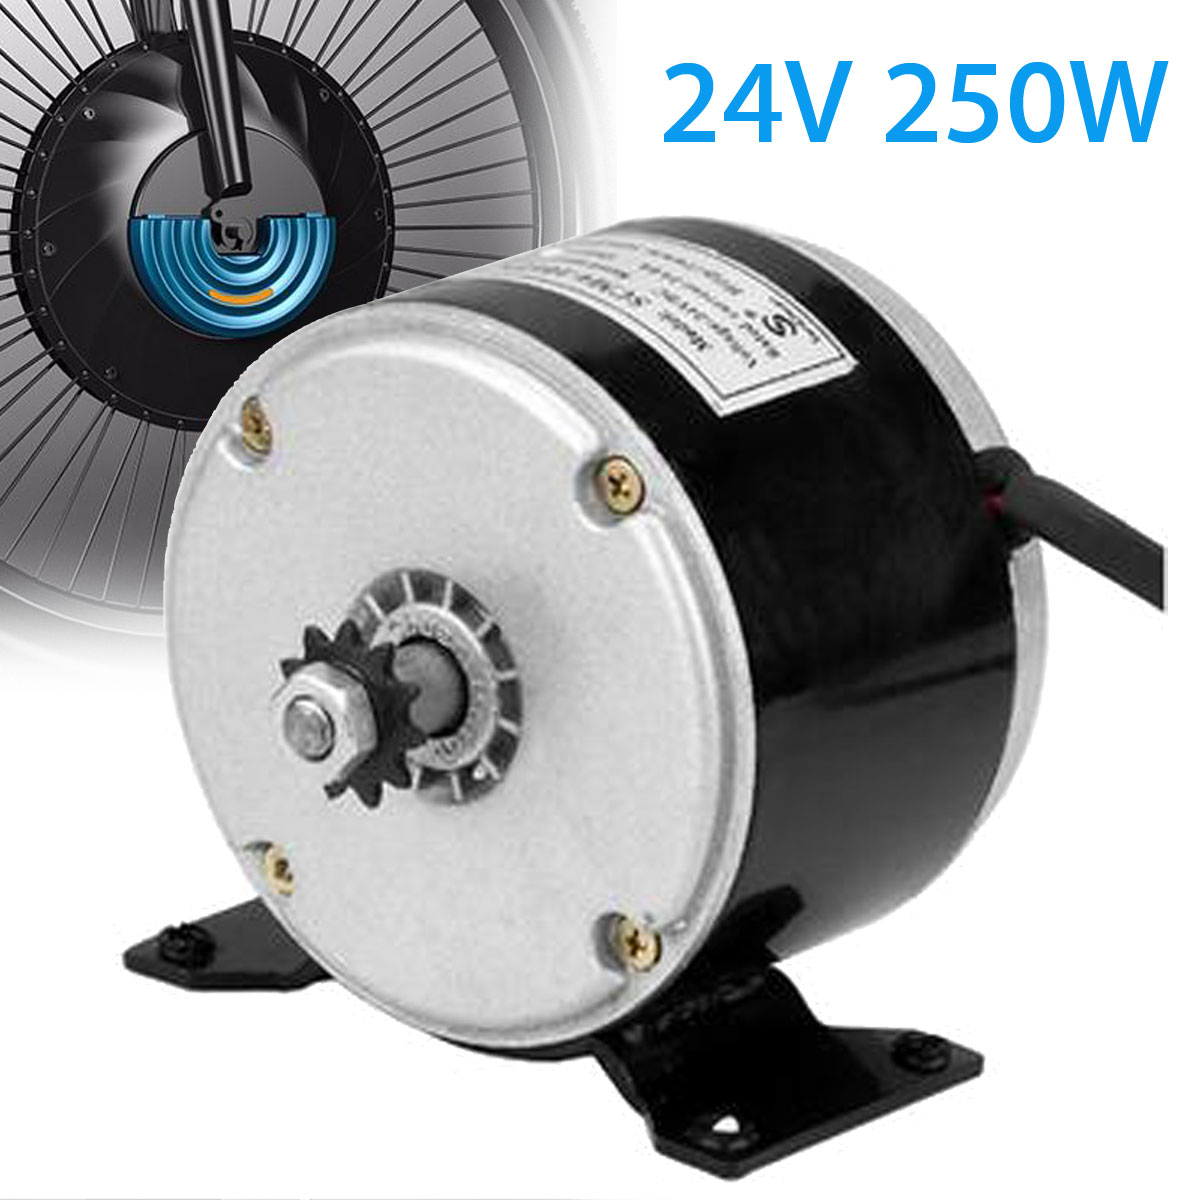 WOLIKE High Quality Brand New 24V 250W DIY Motor Permanent Magnet Generator For Micro Motor PMA